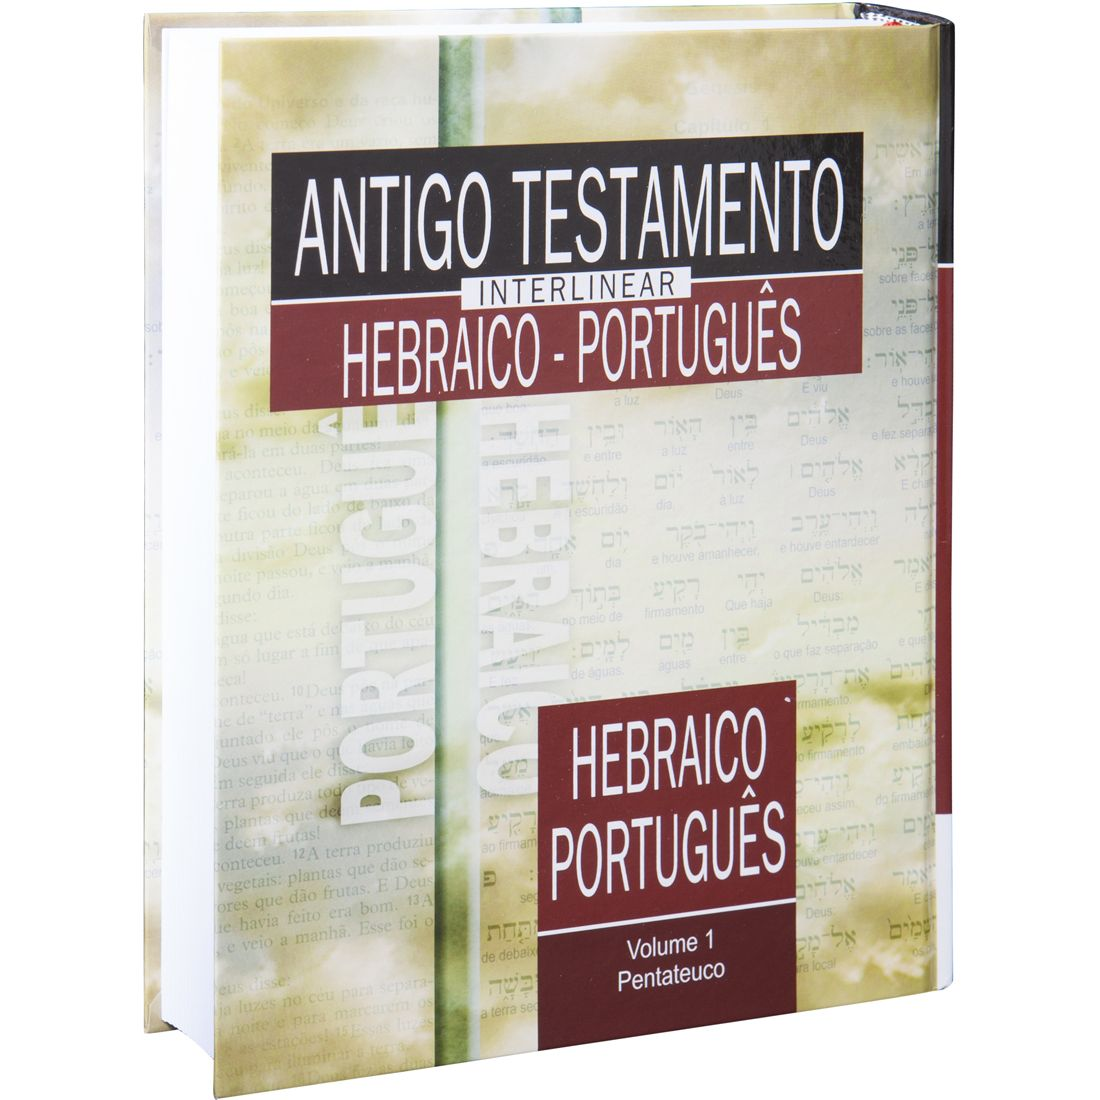 Antigo Testamento Interlinear Hebraico-Português Vol. 1 - Pentateuco